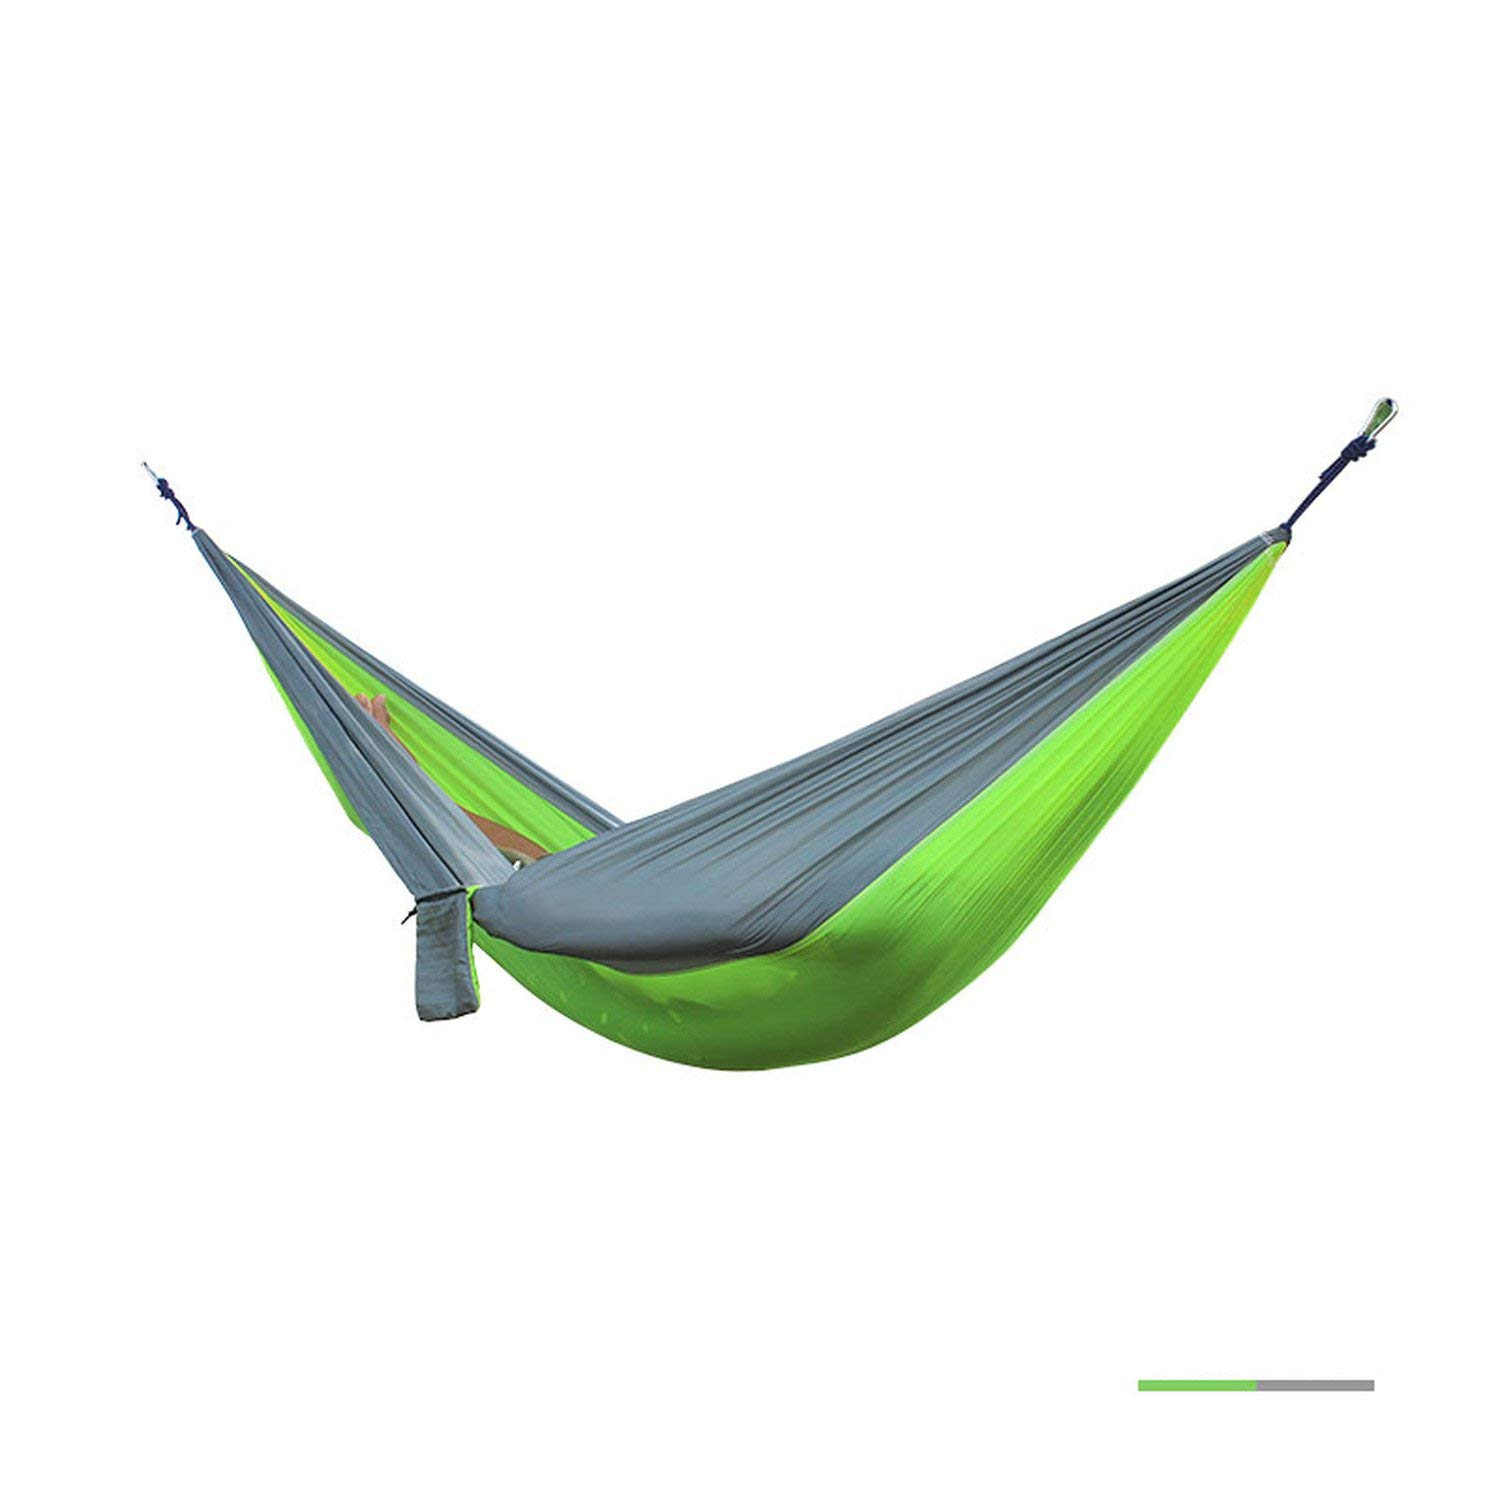 Outdoor Furniture Hammocks 12 Color 2 People Portable Parachute Hammock Camping Survival Garden Ultralight Hunting Leisure Hamac Travel Double Person Hamak Products Hot Sale